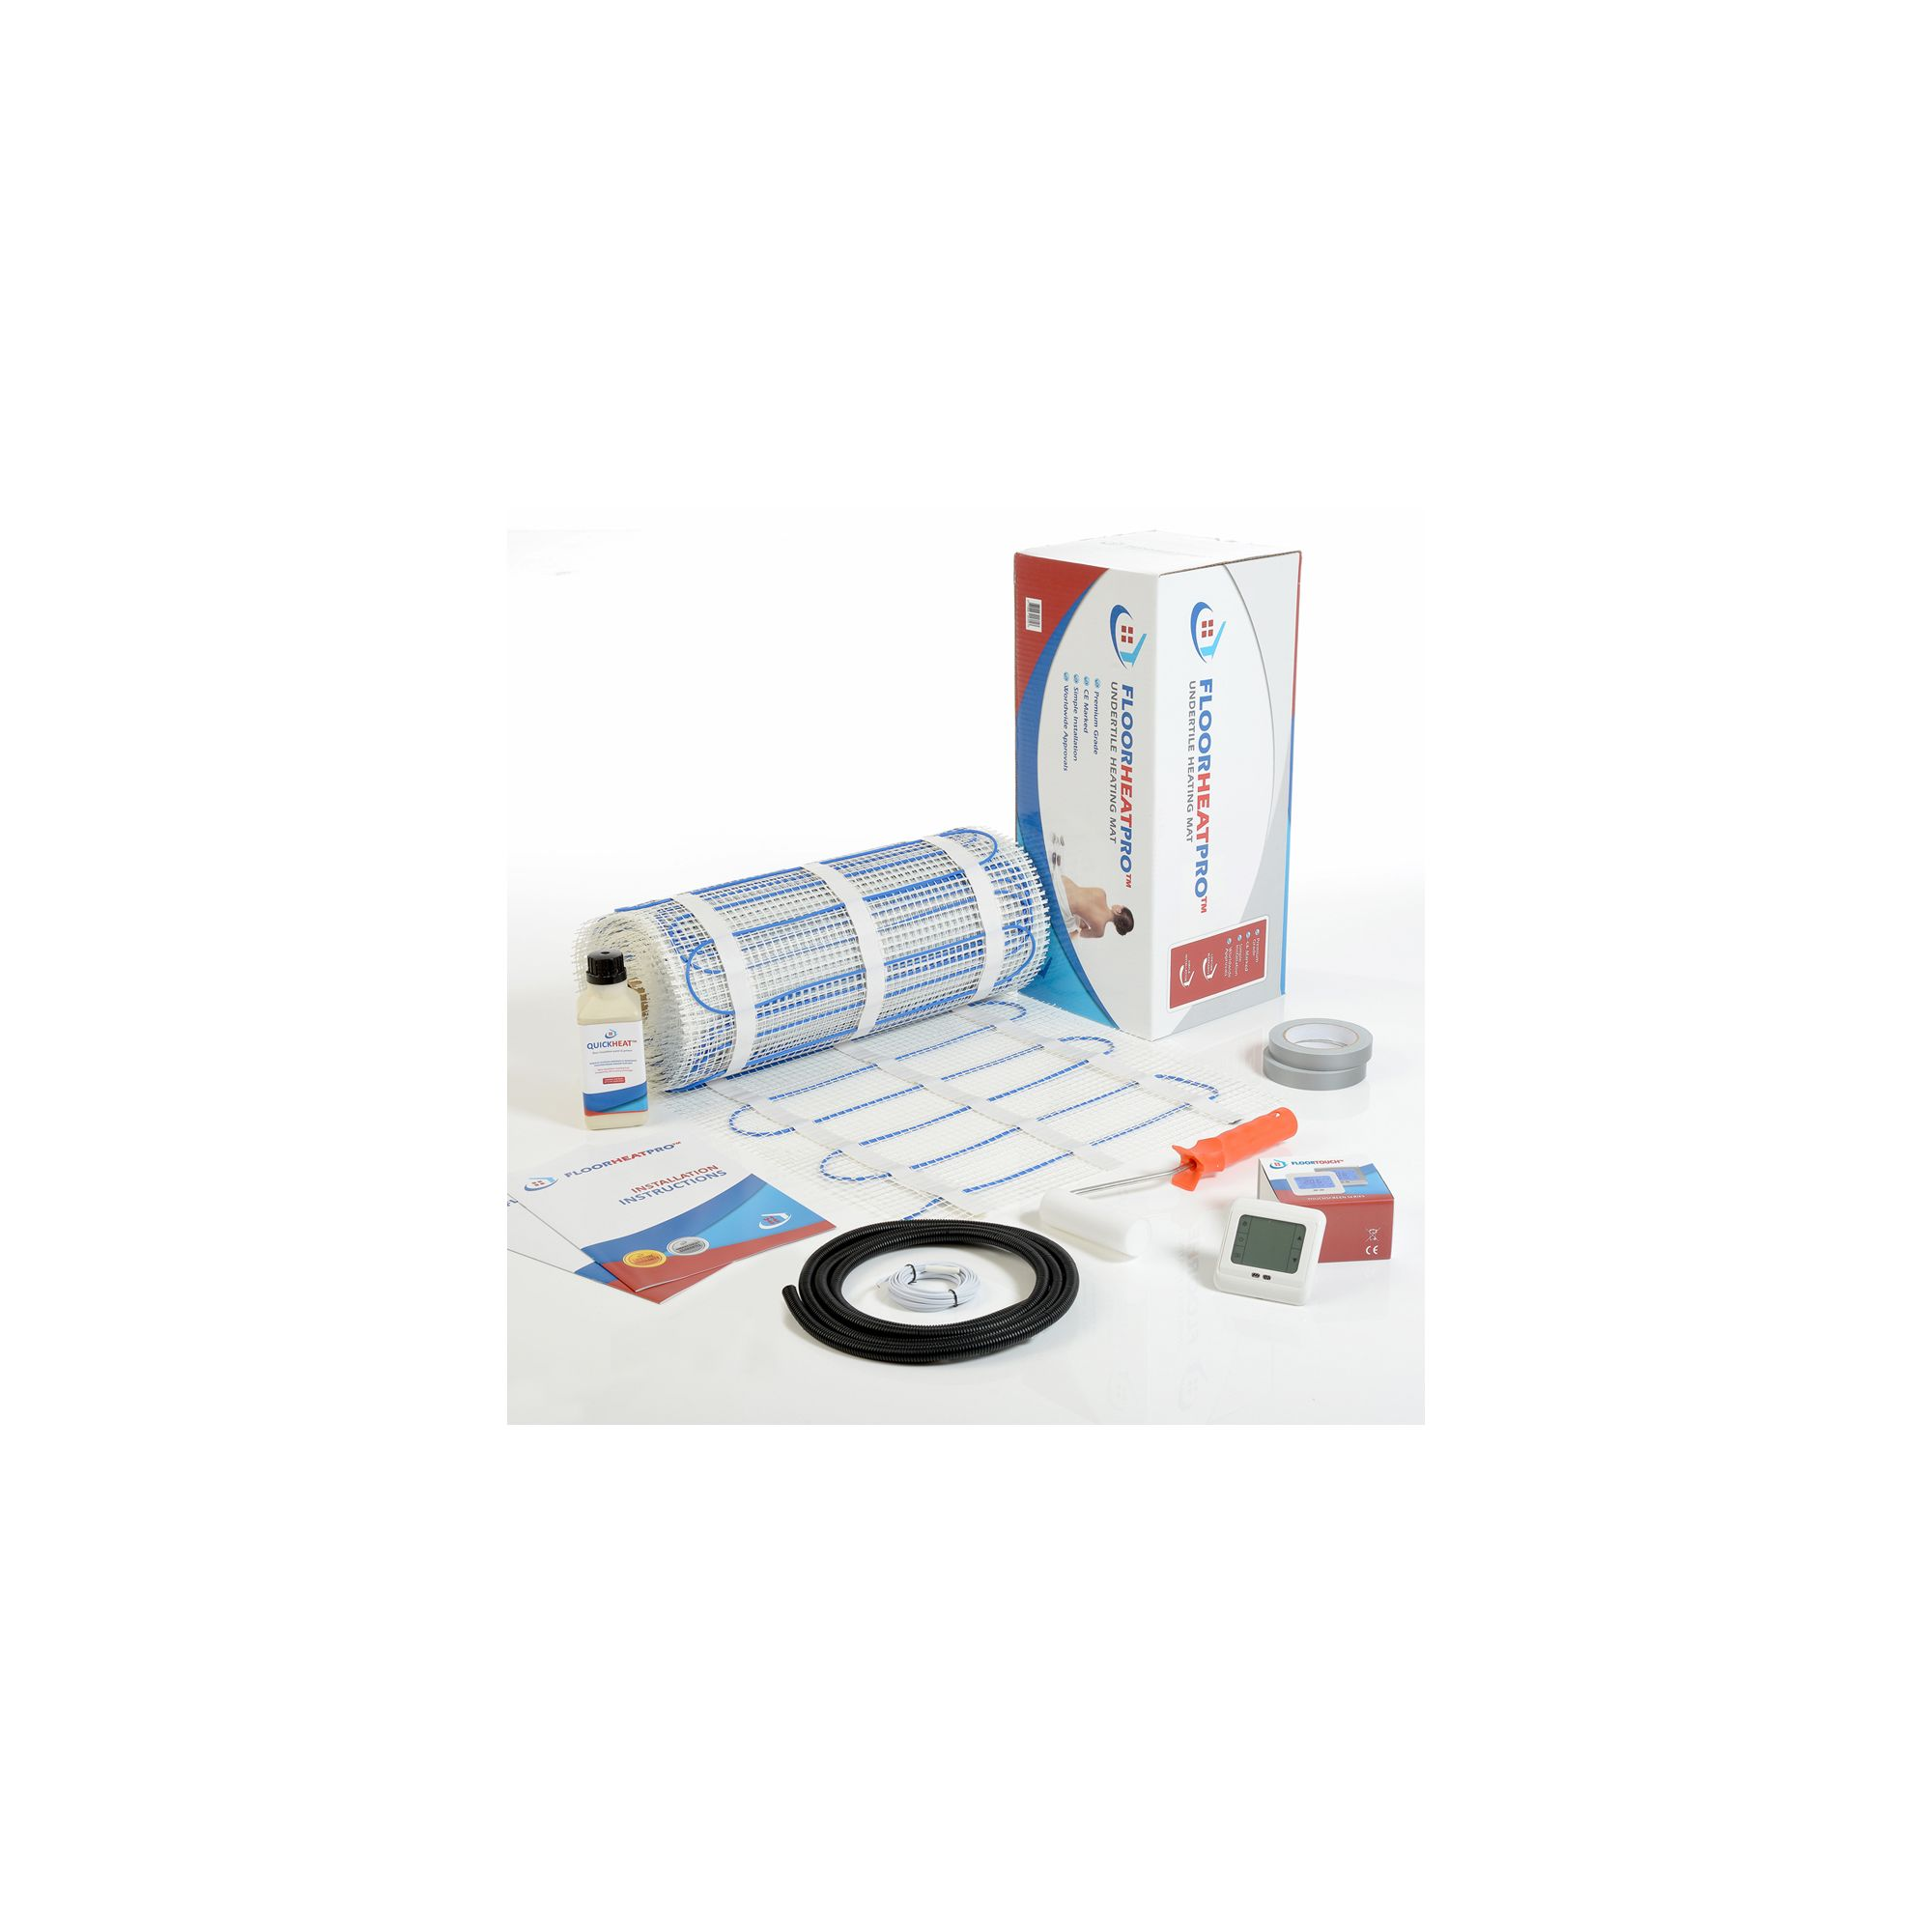 20.0m2 - Underfloor Electric Heating Kit 150w/m2 - Tiles at Tesco Direct